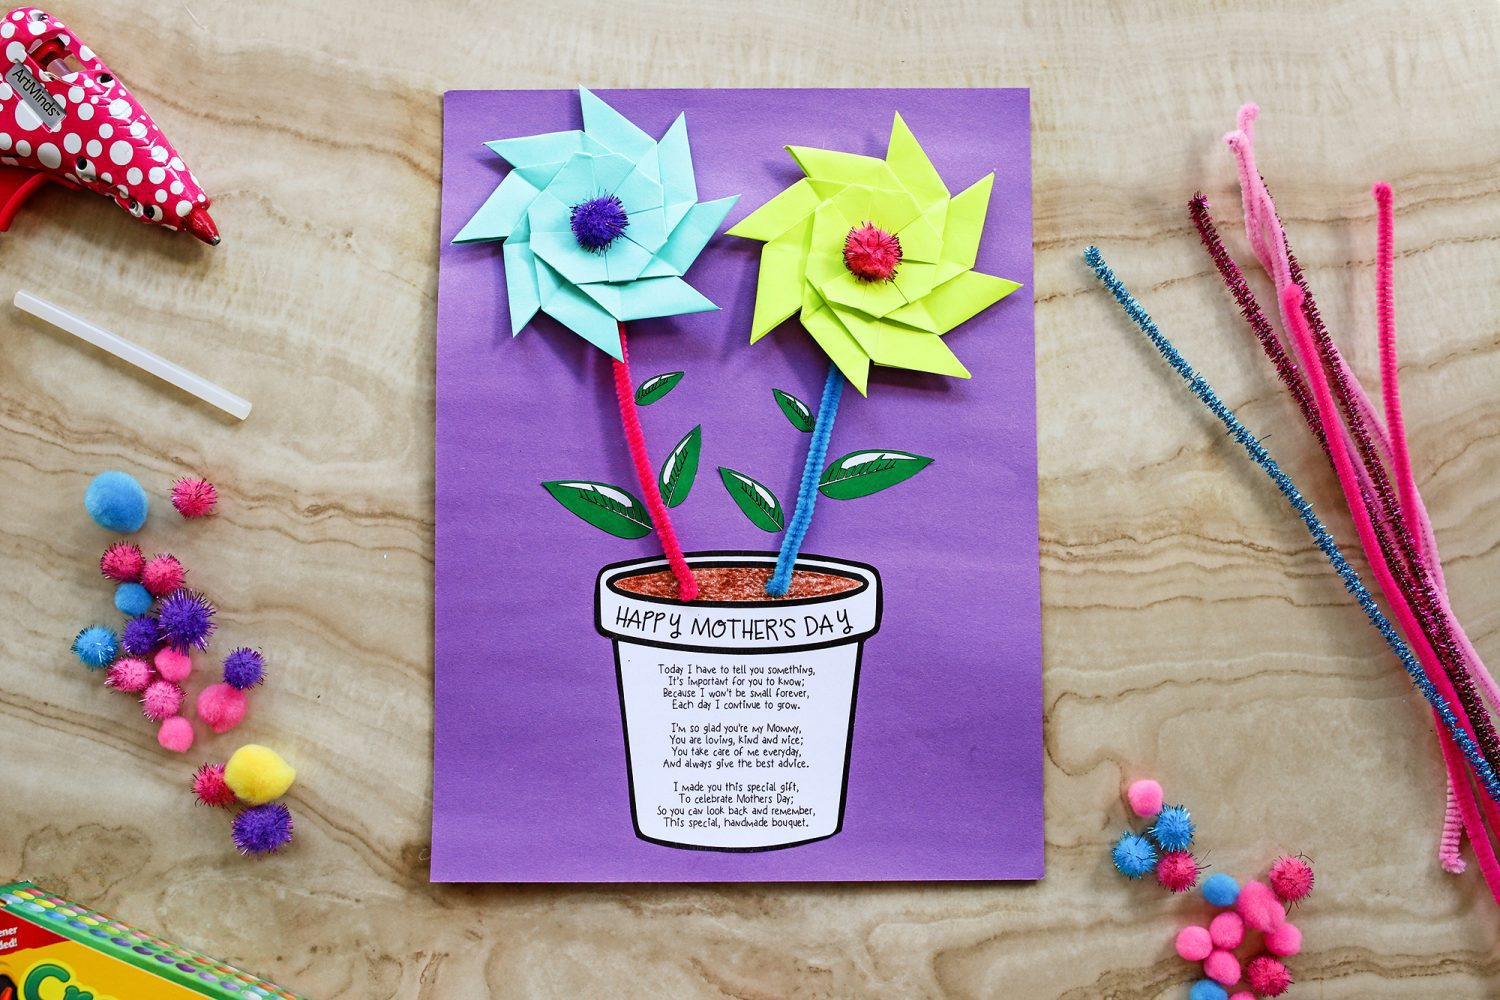 Mother's Day flower pot printable craft idea